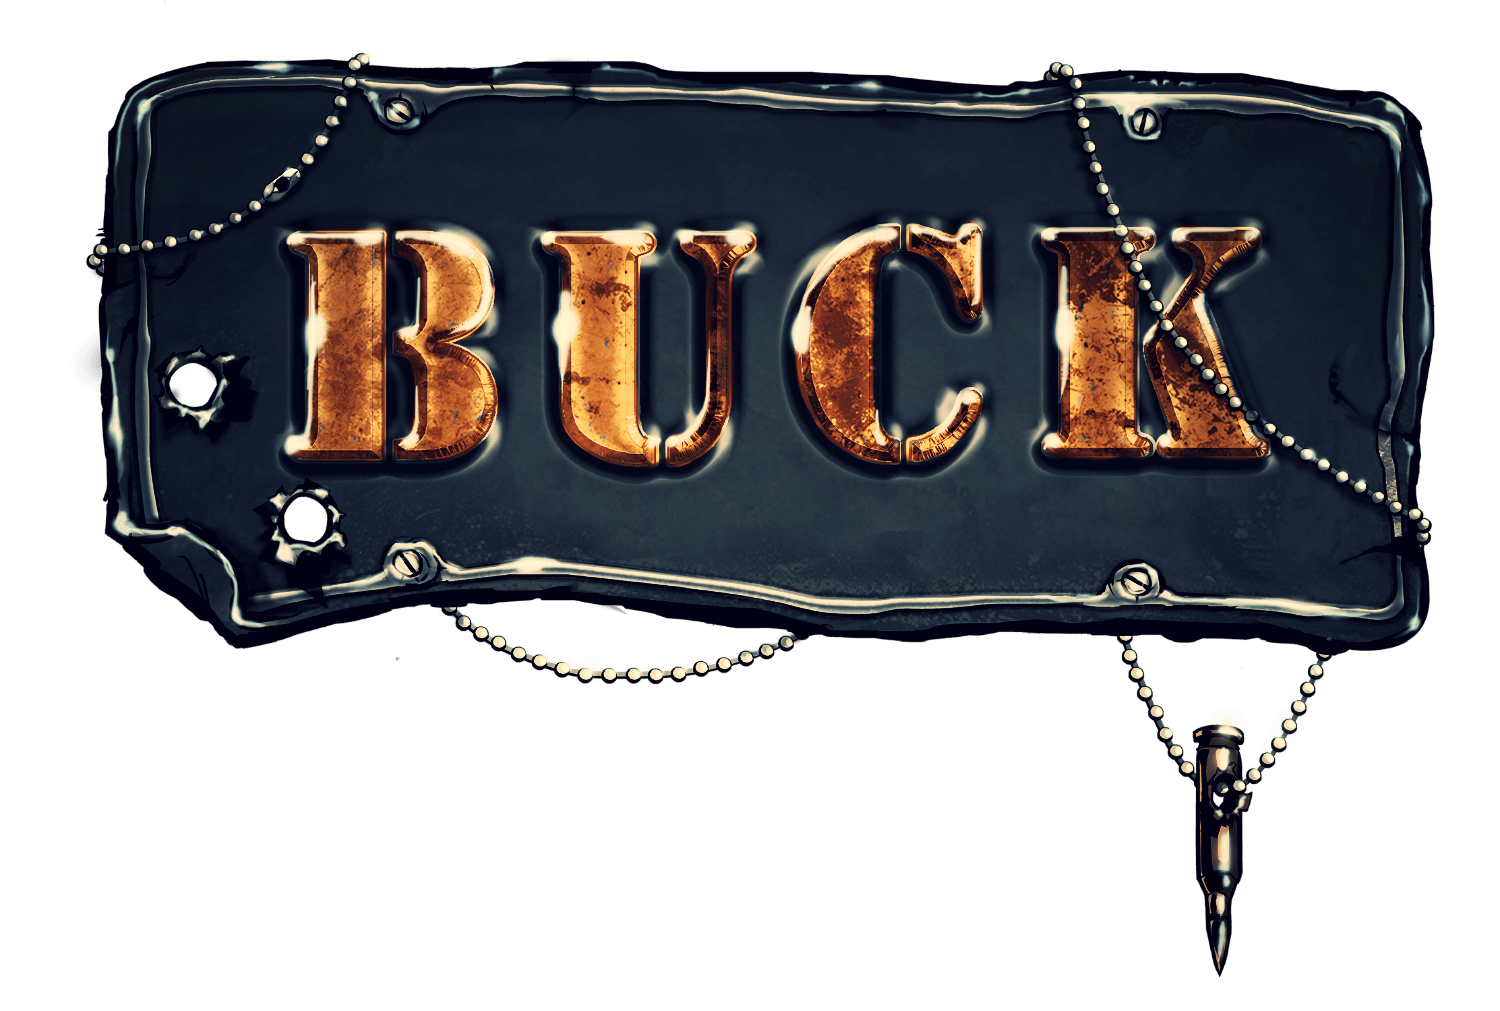 INTERVIEW with BUCK Developer Wave Interactive